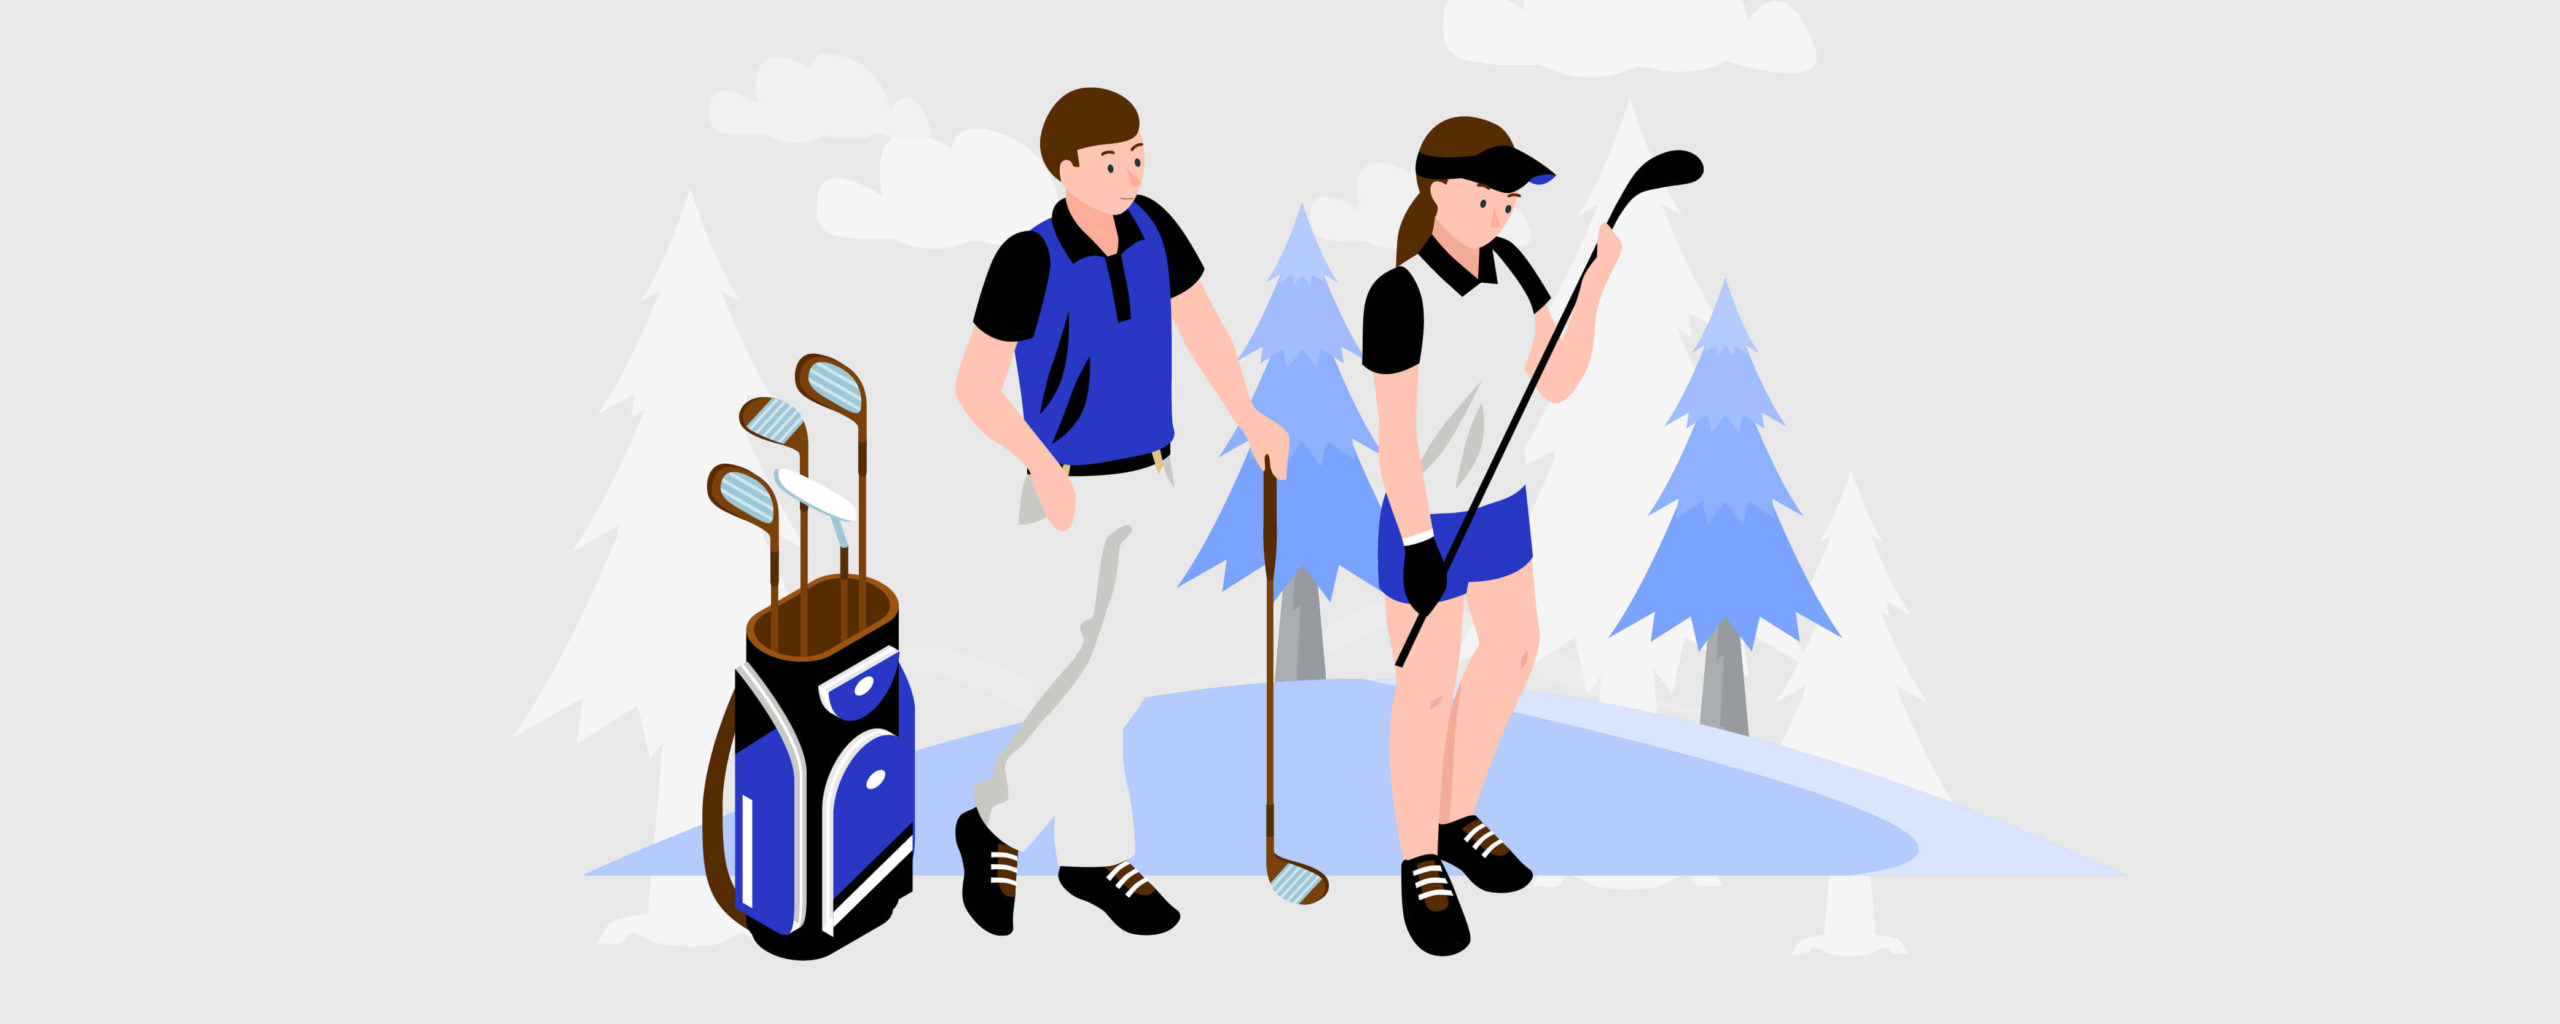 Man and woman in golf attire